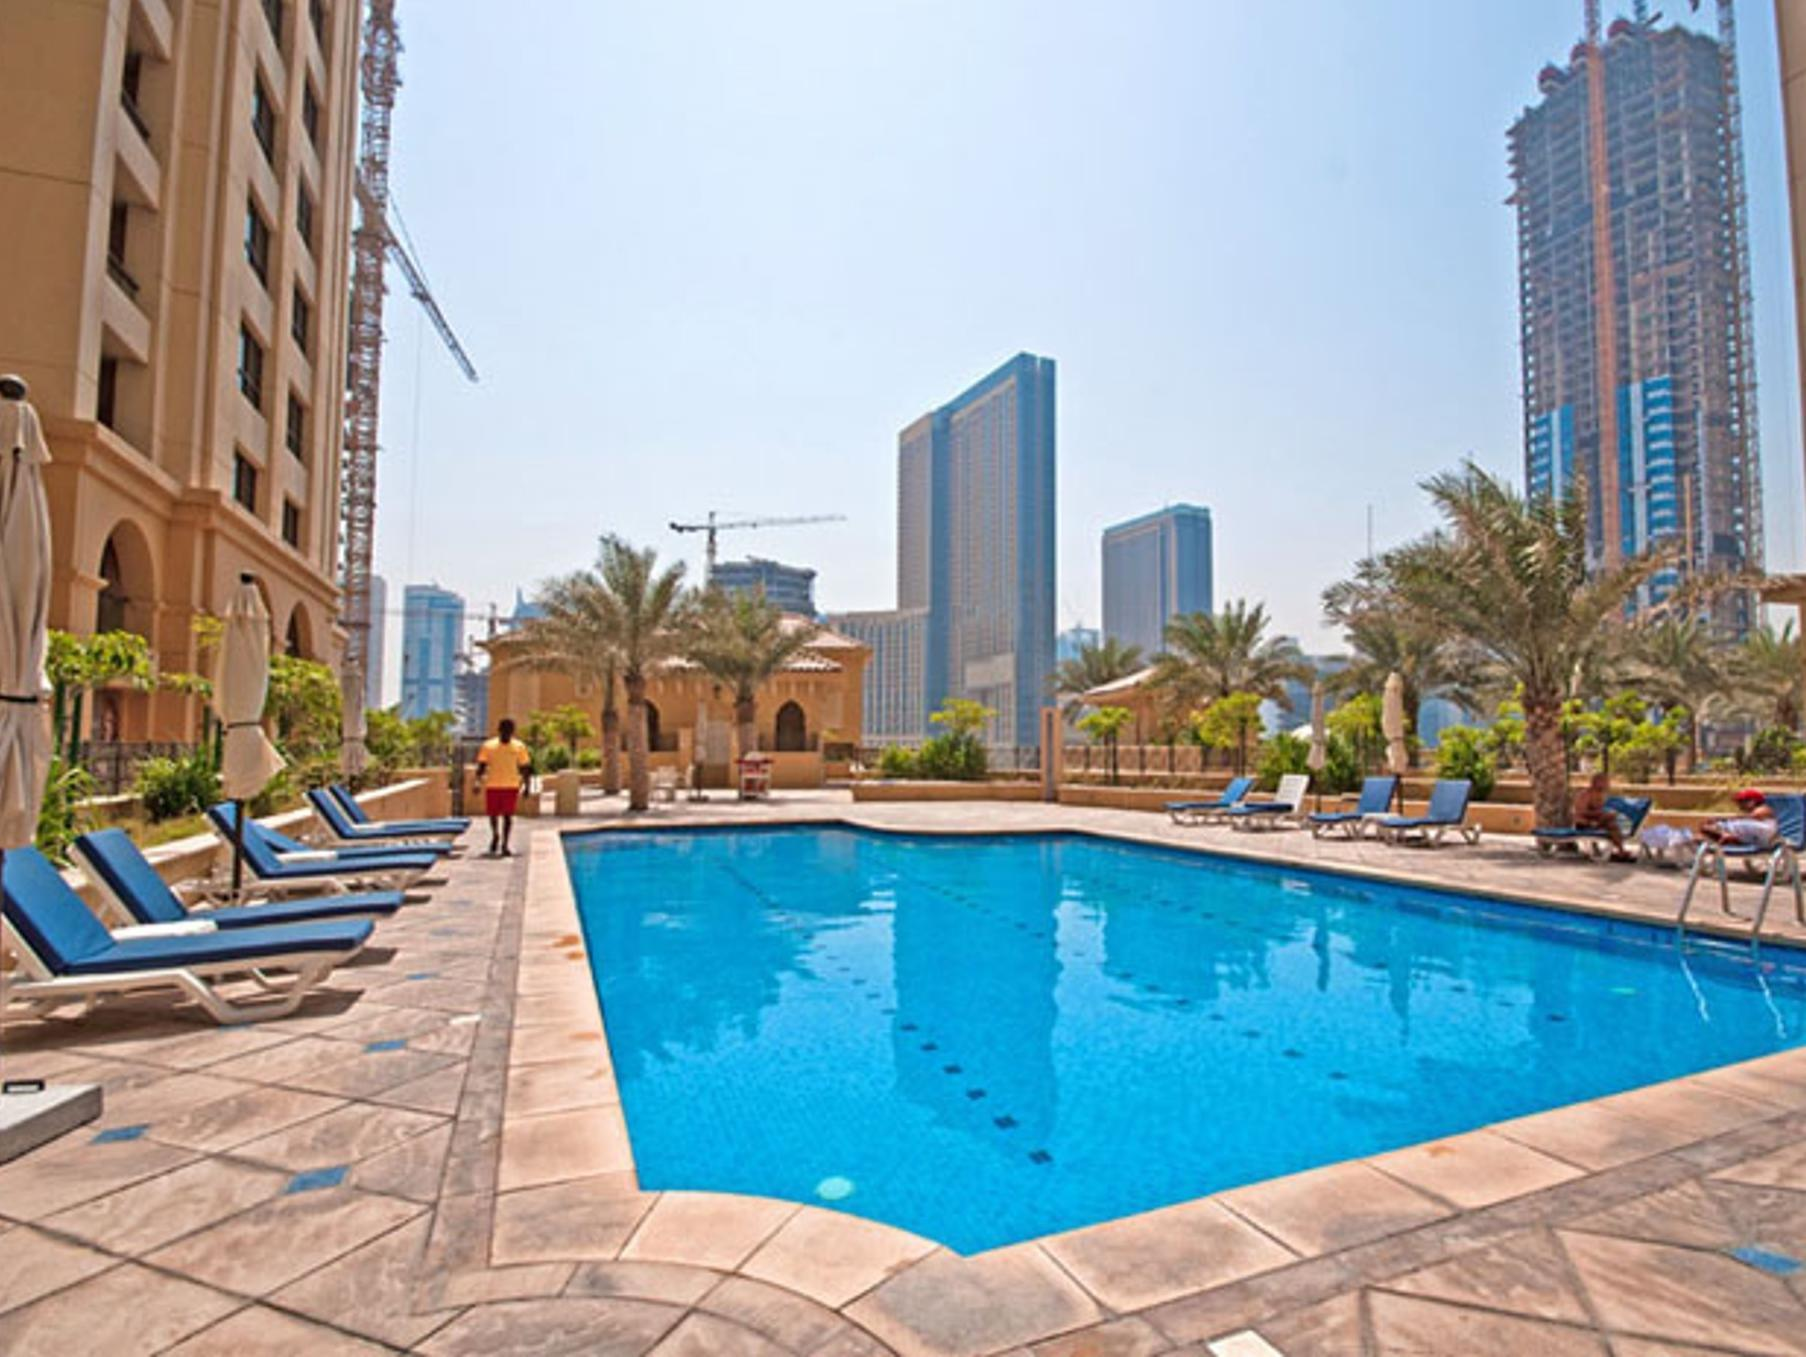 Vacation Bay - Sadaf 4 JBR Apartment - Hotels and Accommodation in United Arab Emirates, Middle East